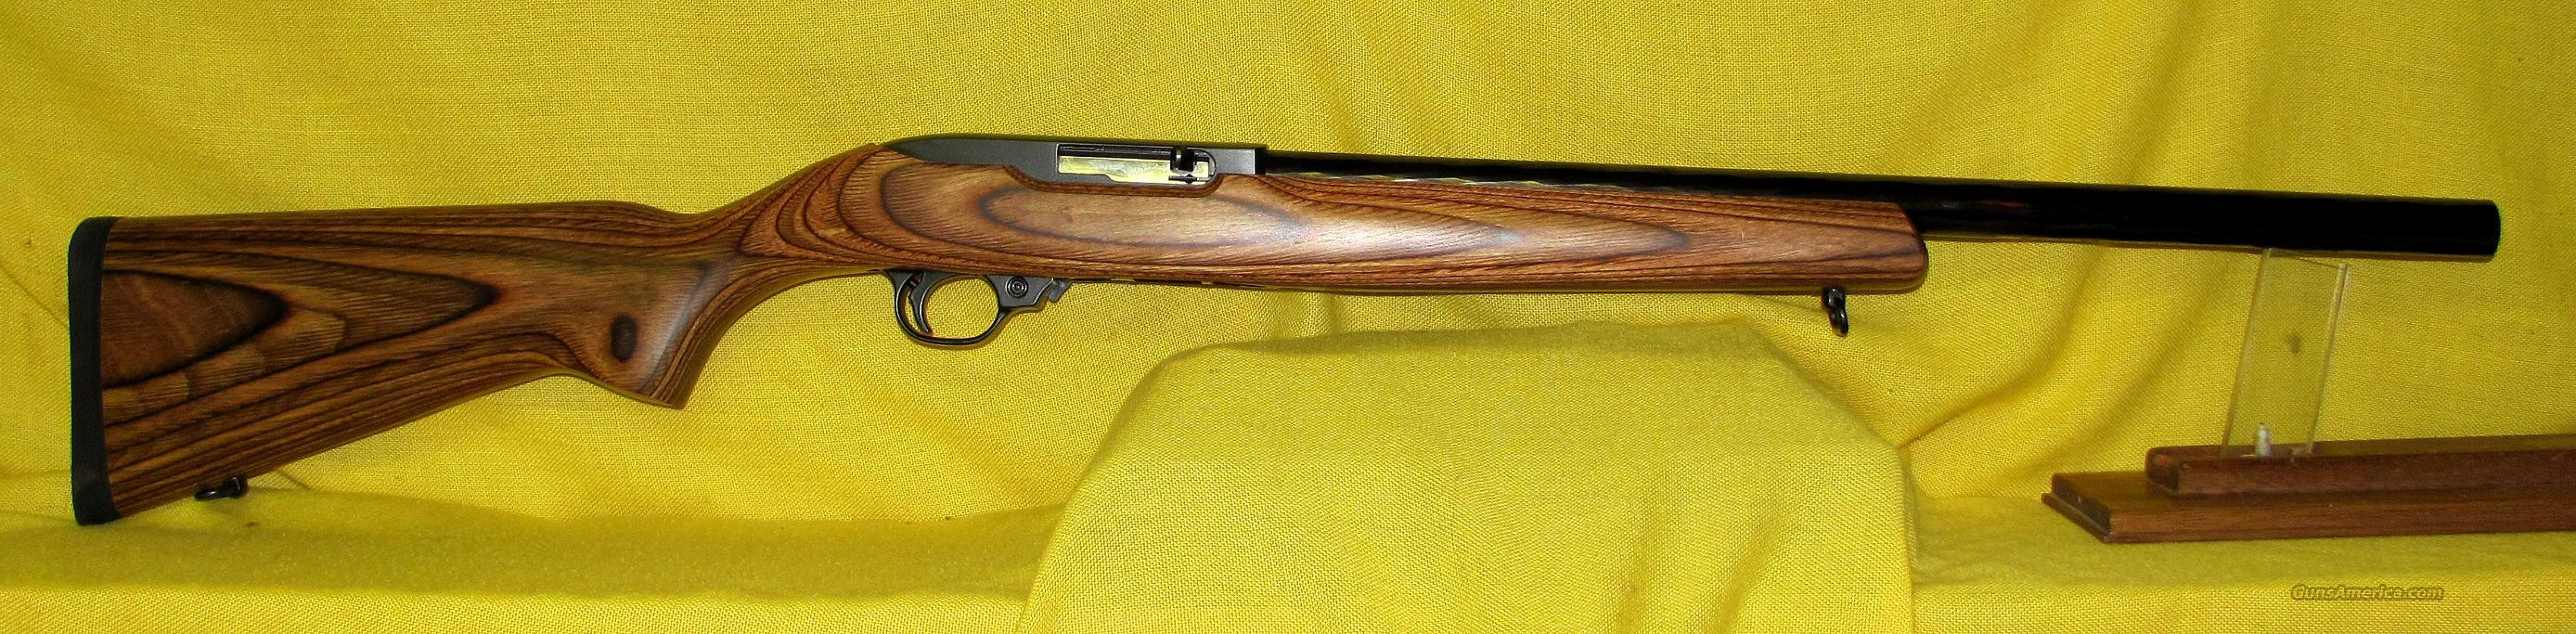 "RUGER 10/22 SILOUETTE .22 20"" BBL  Guns > Rifles > Ruger Rifles > 10-22"